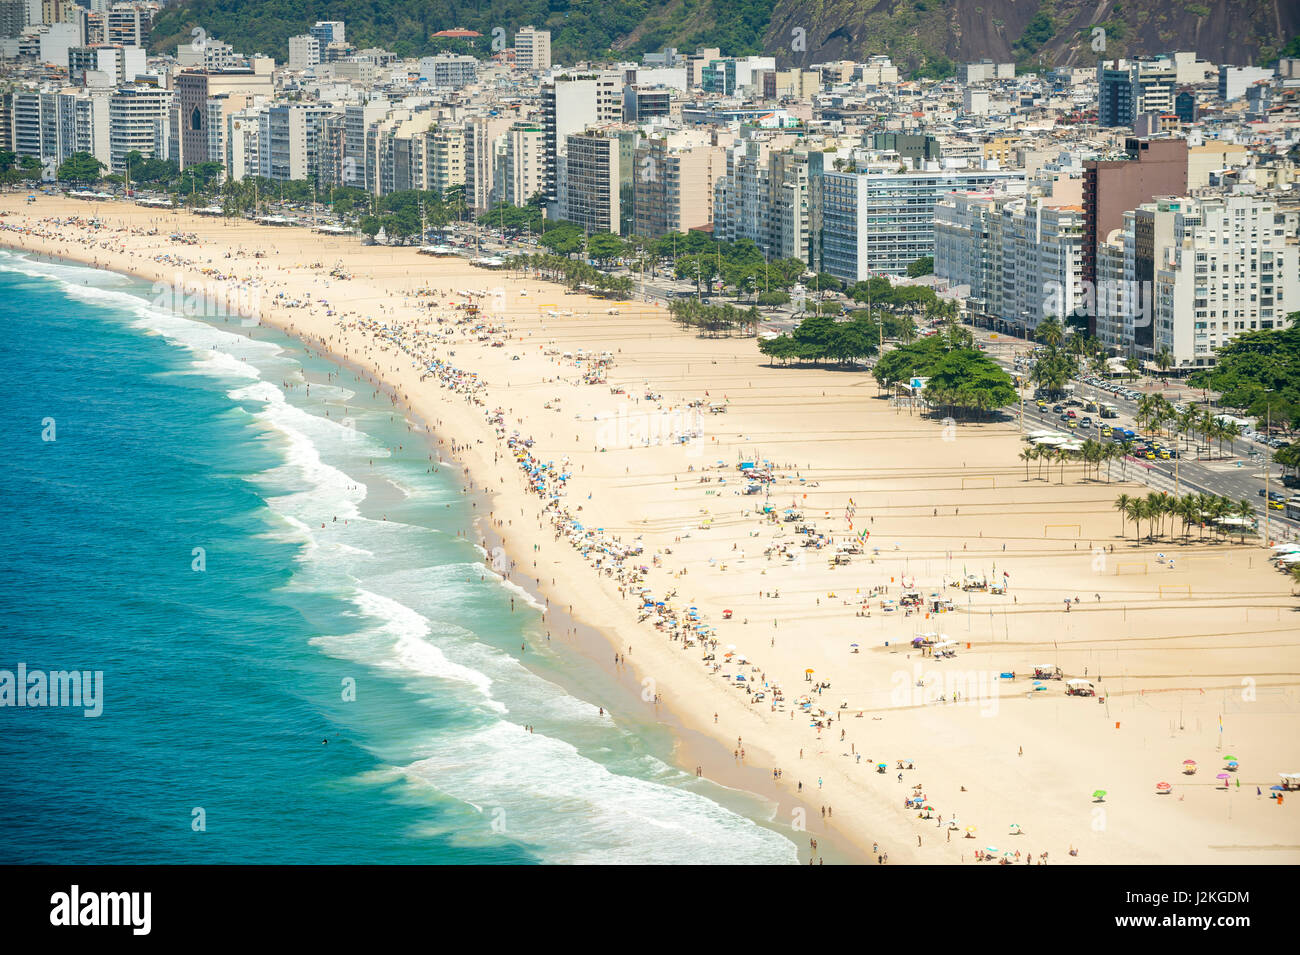 Scenic overlook of the Rio de Janeiro city skyline with the broad crescent of beach at Copacabana - Stock Image